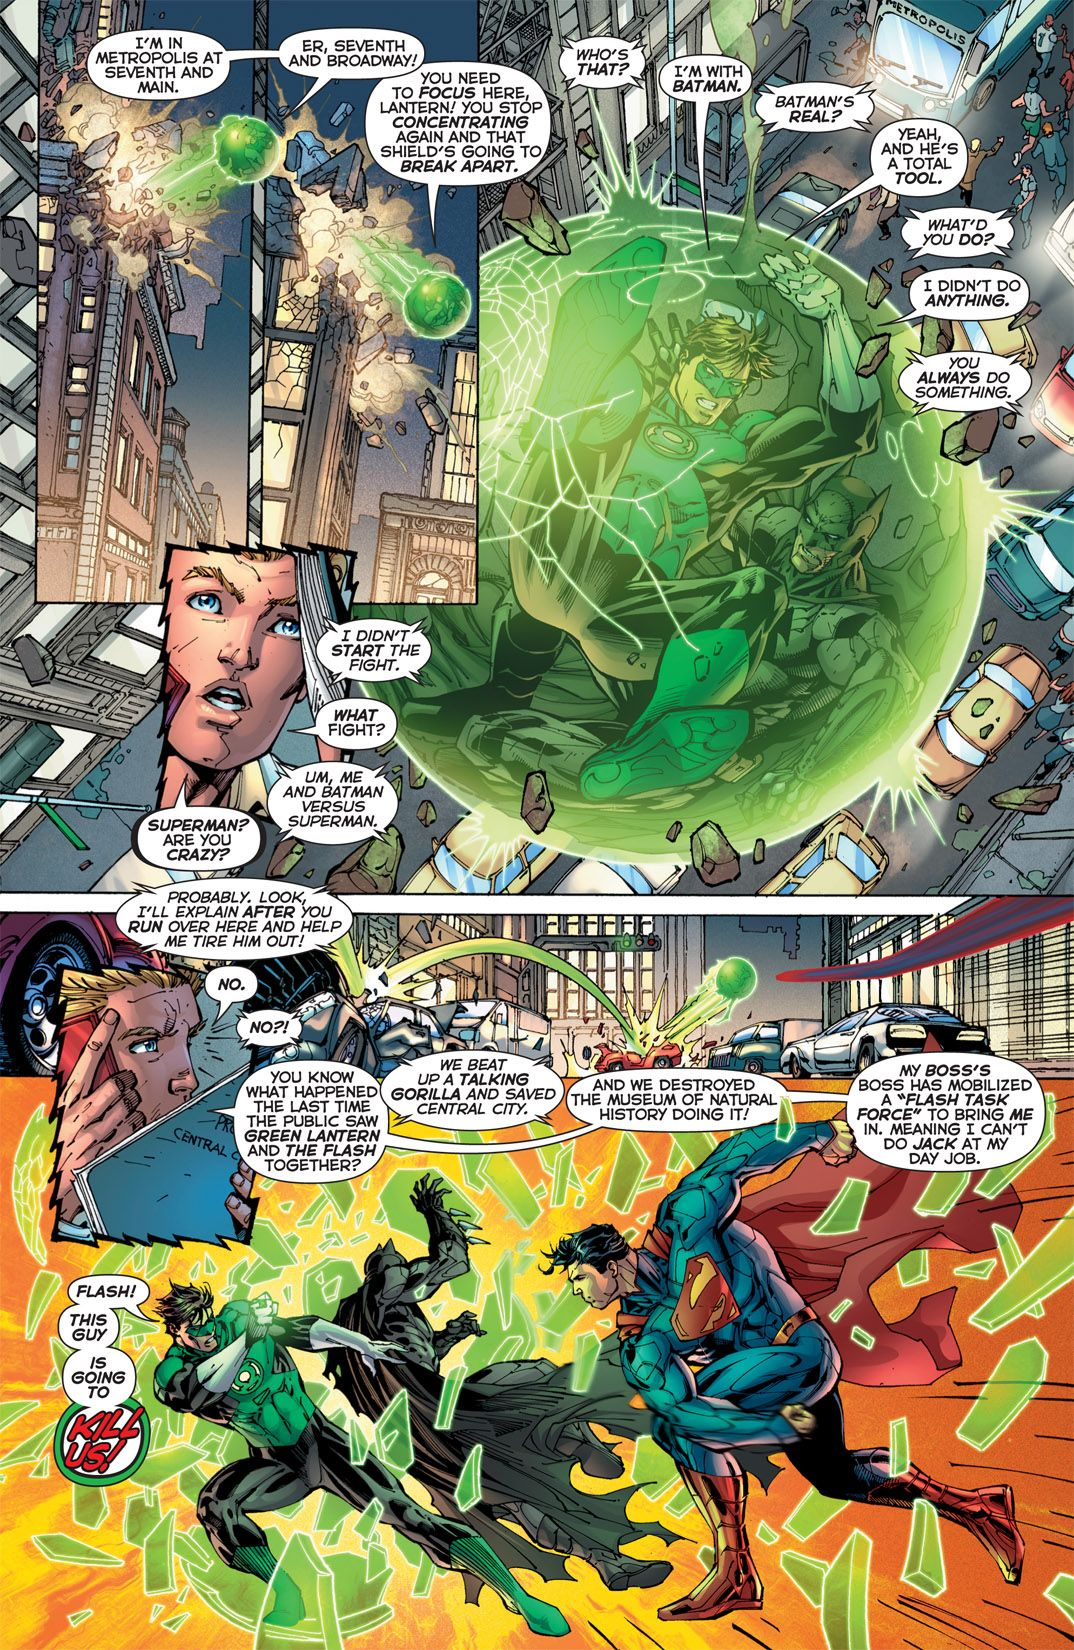 Justice League #2 by Jim Lee | Panels and a splash of color ...